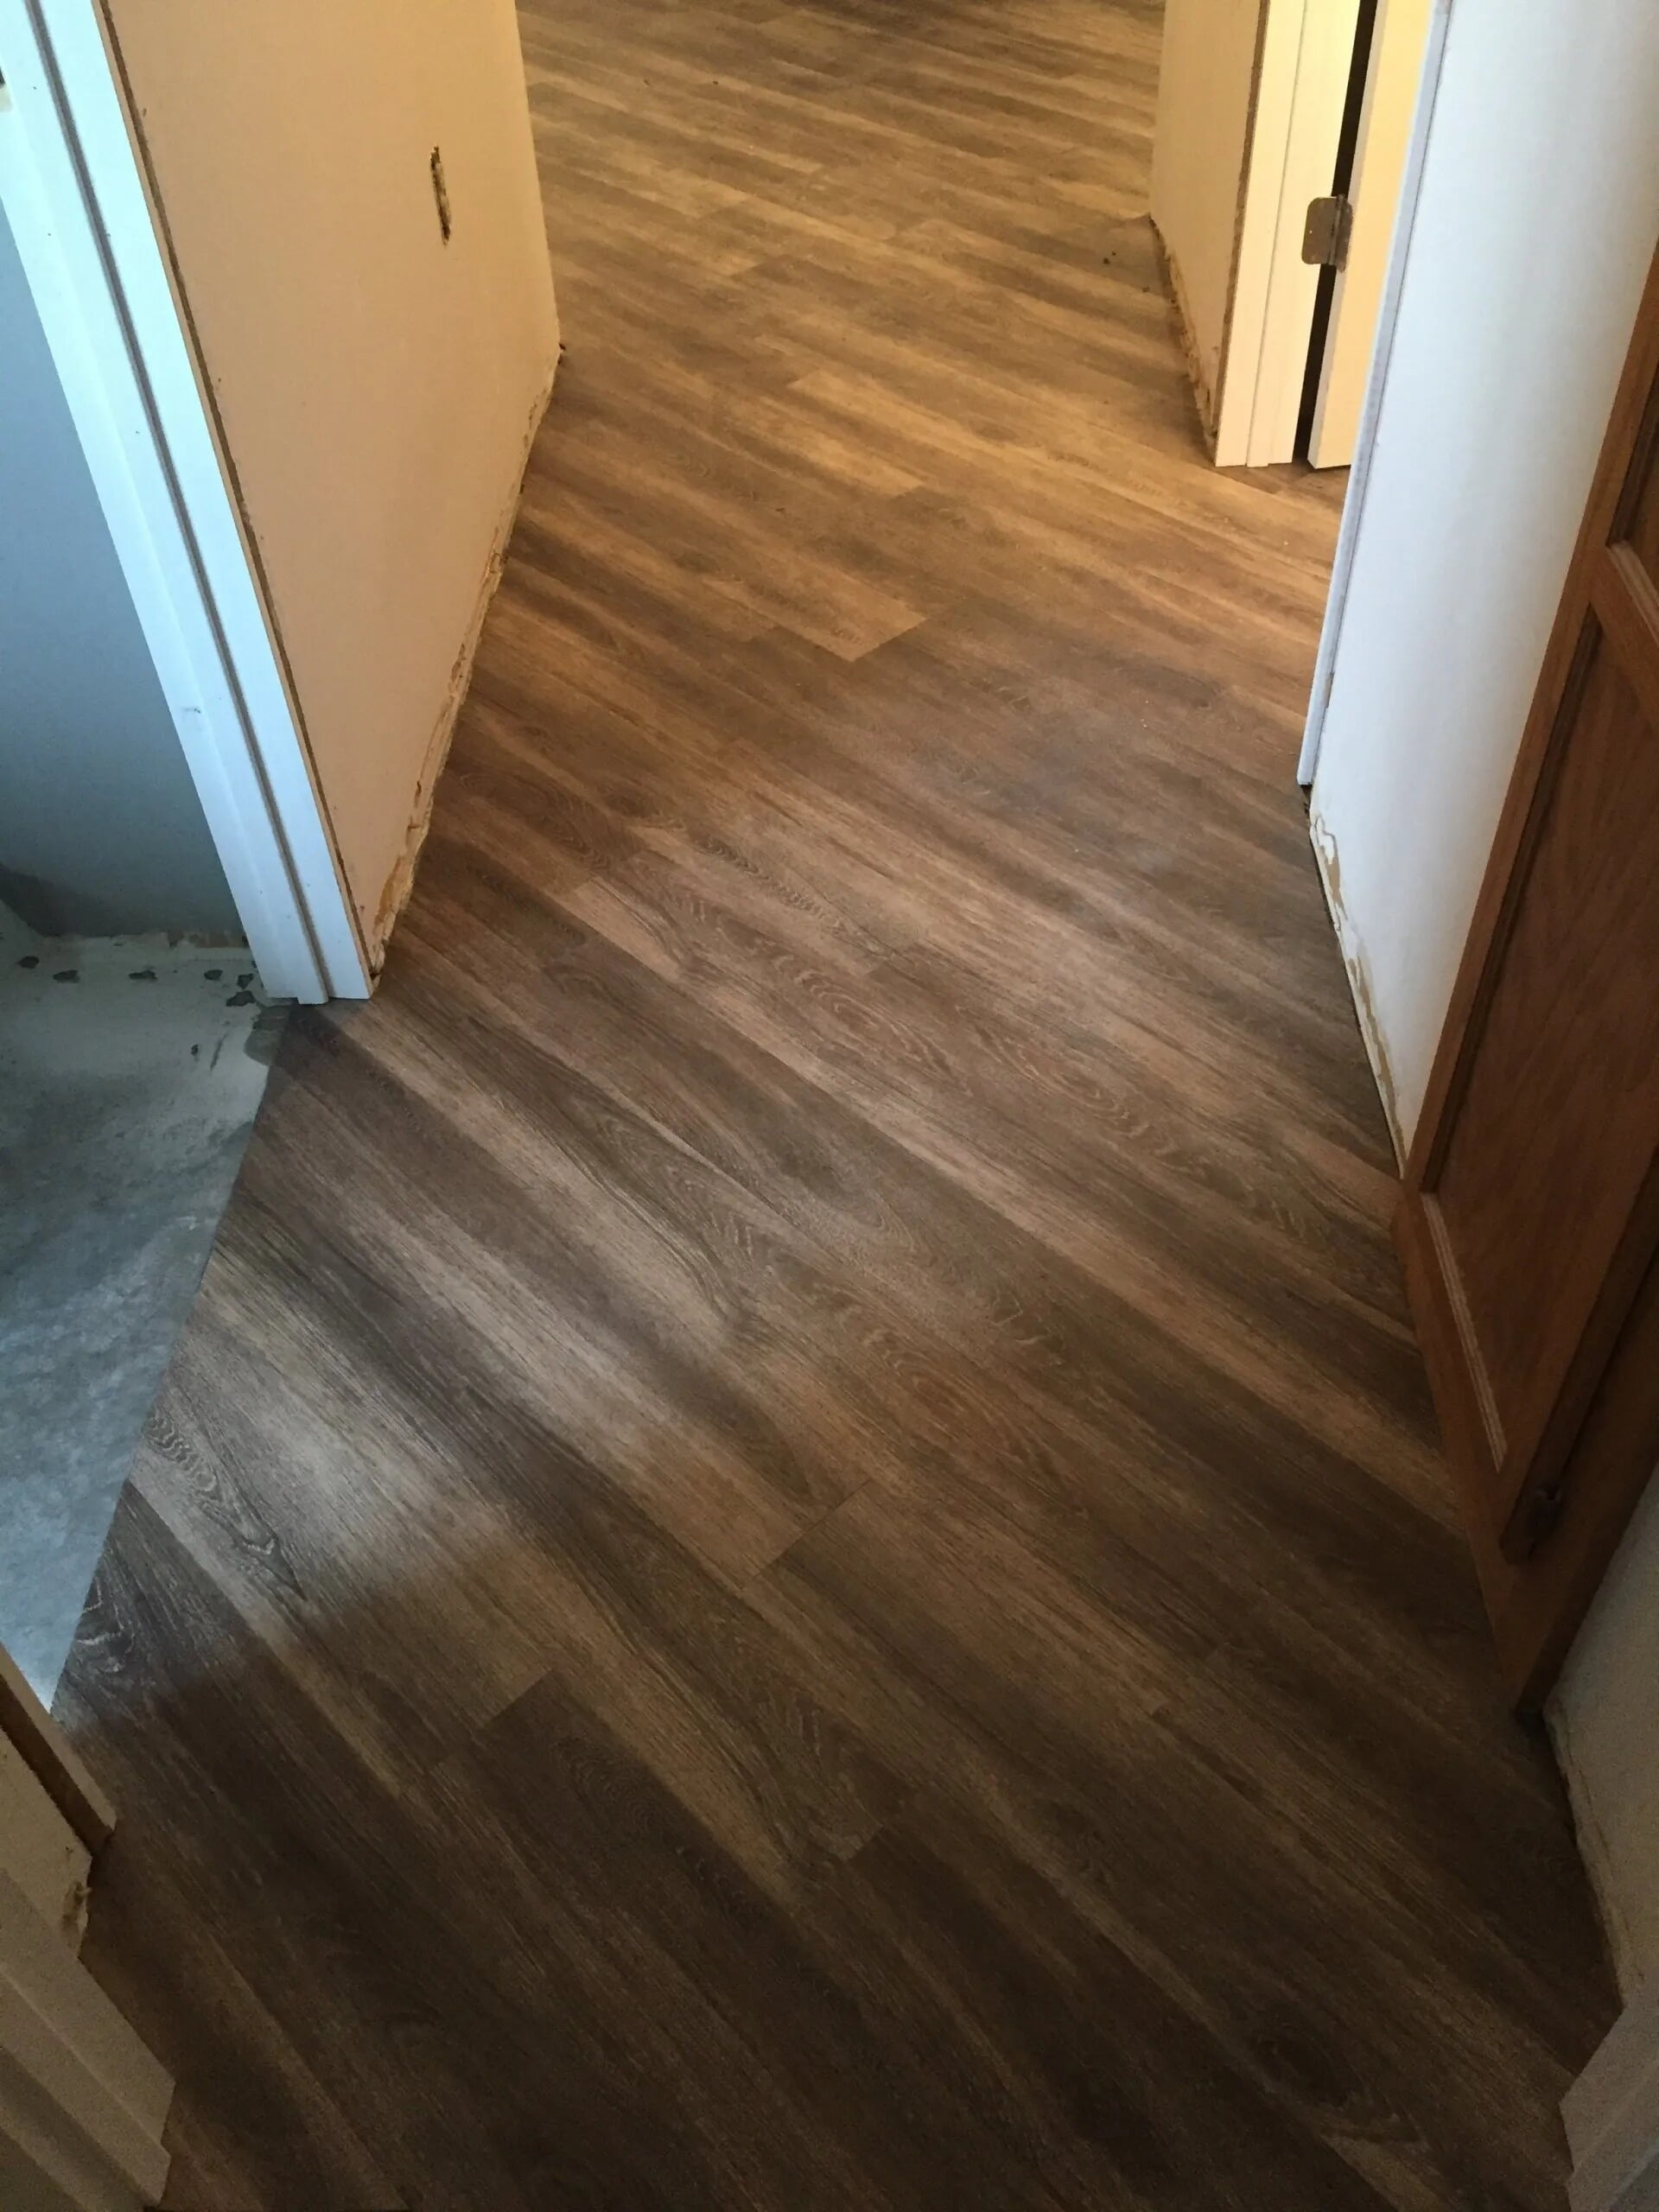 Custom install hardwood flooring in Burnsville, MN from Infinite Floors and More